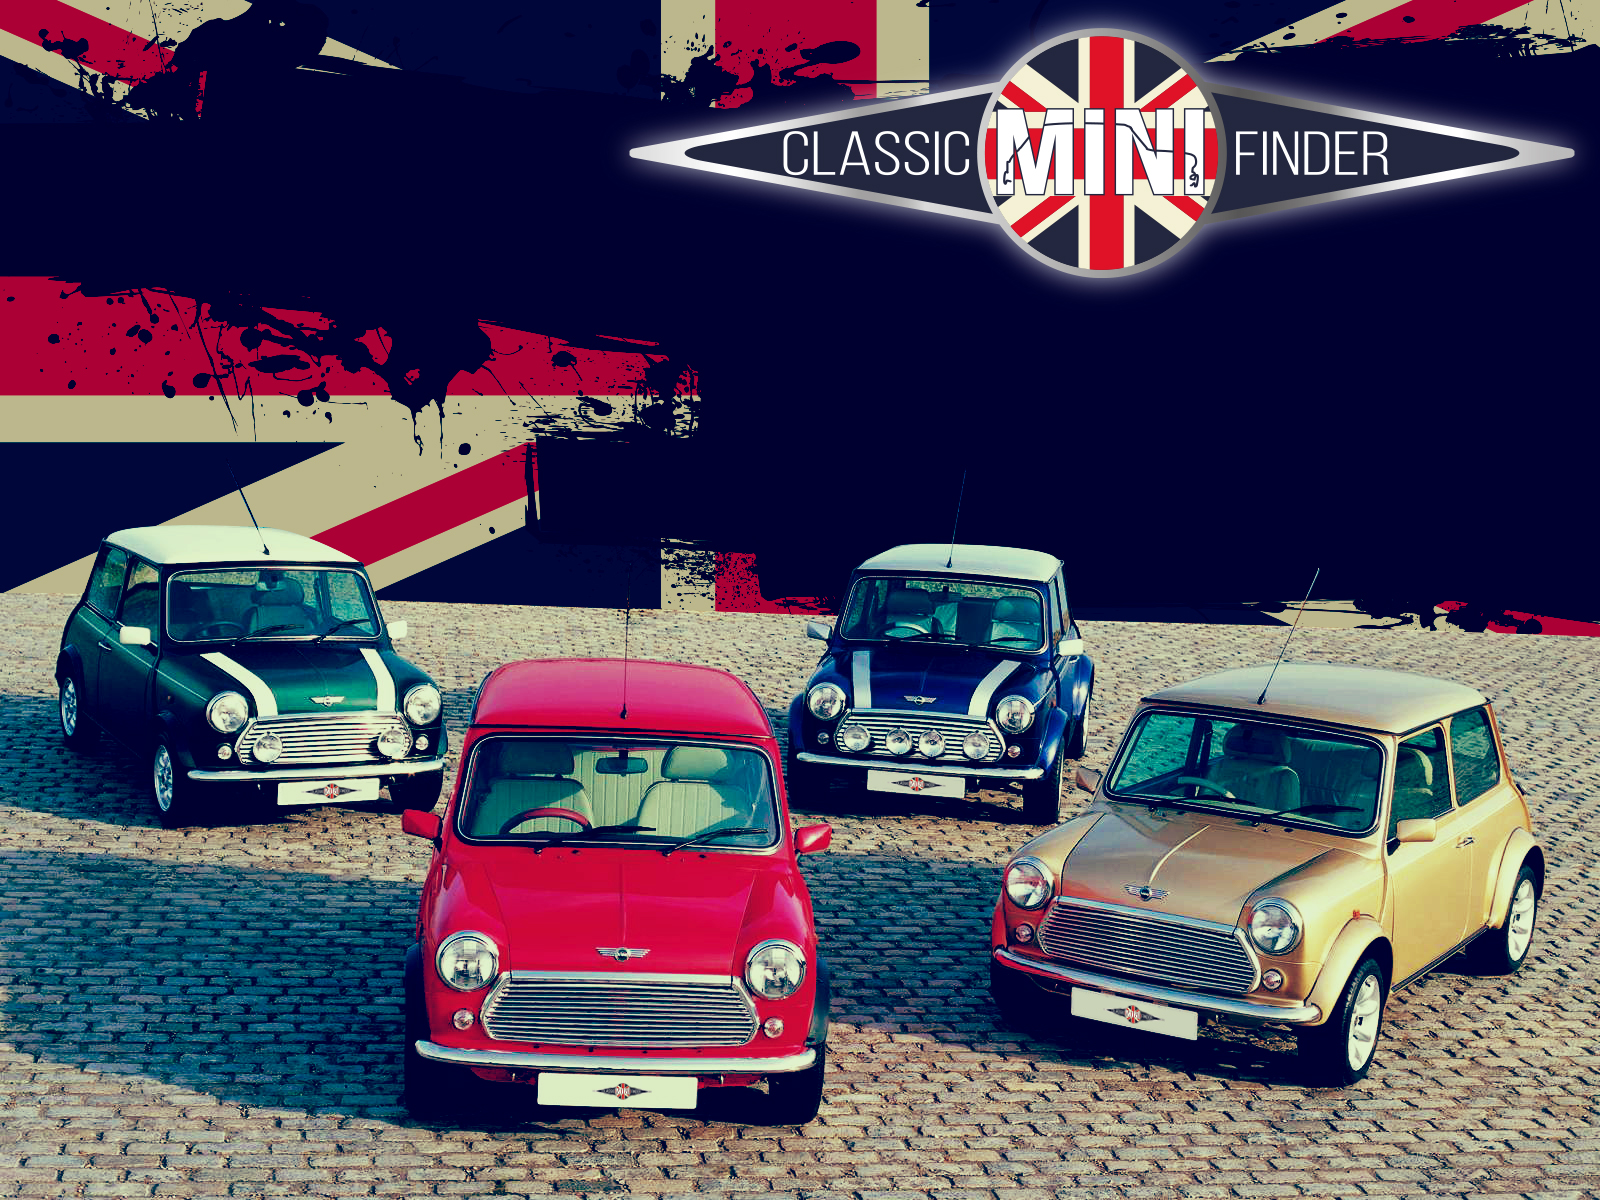 Brand New Service To Source Classic Minis Launched Lovemini - Classic car finder